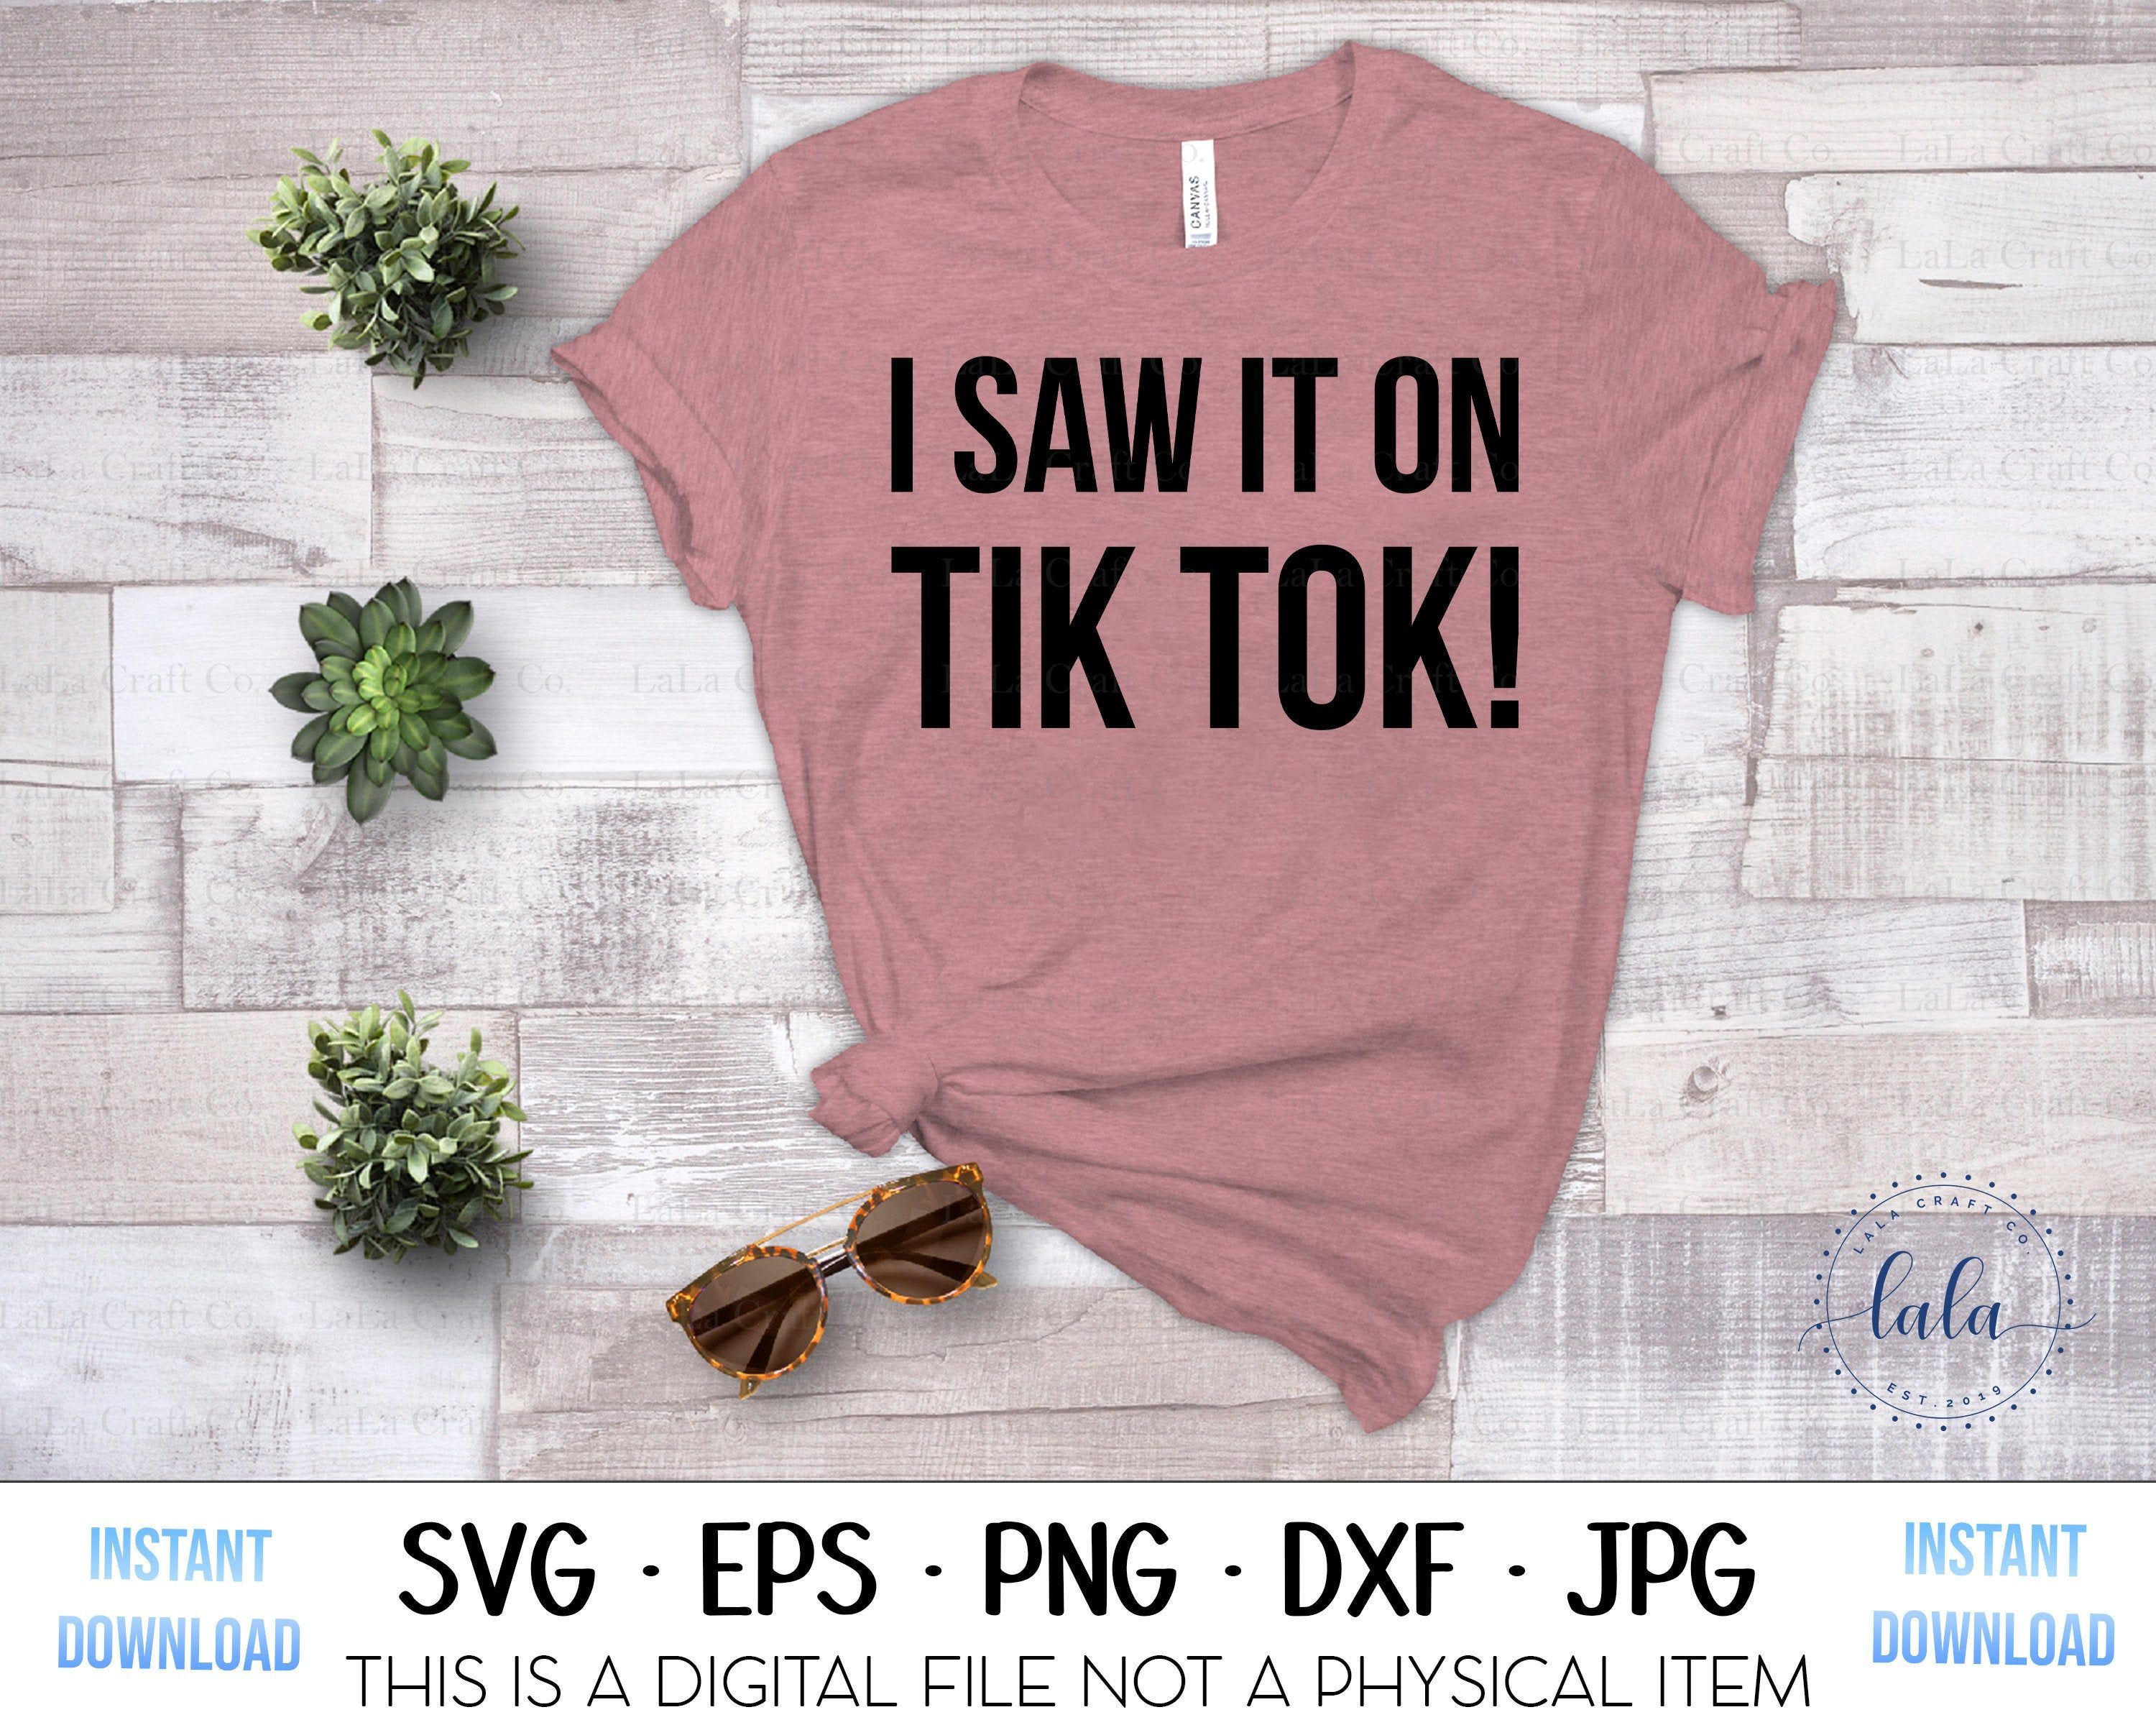 I Saw It On Tik Tok Svg Digital Download Png Jpg Dxf Etsy In 2021 Cute Outfits For Kids How To Make Tshirts Tik Tok